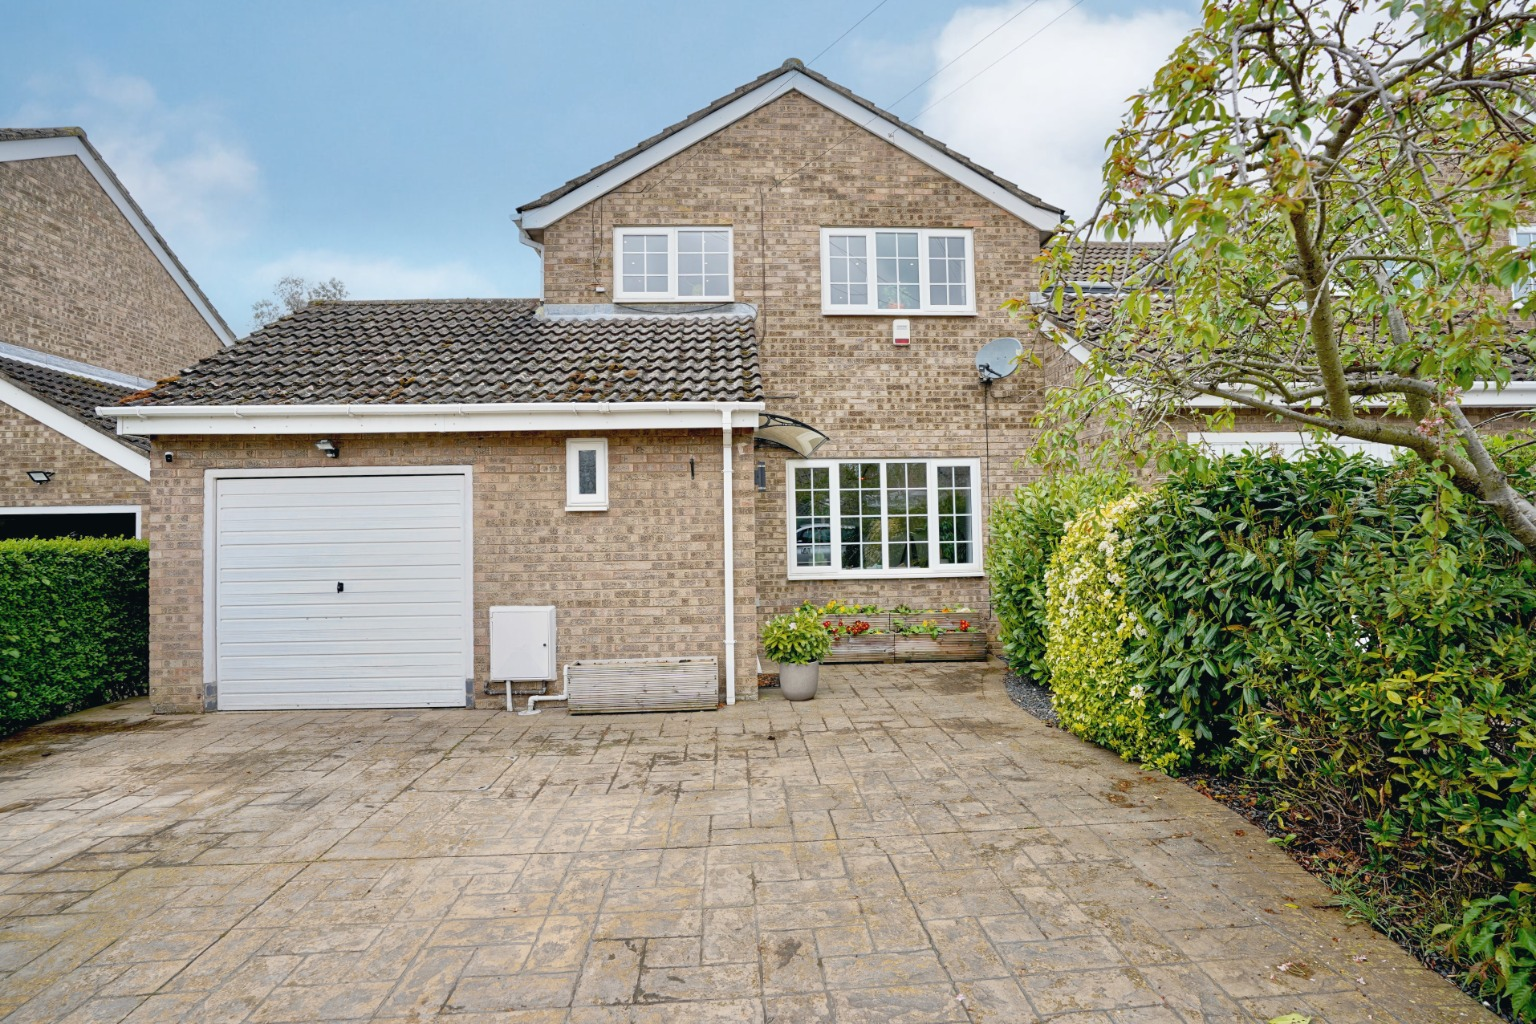 4 bed detached house for sale in Staughton Place, St. Neots, PE19